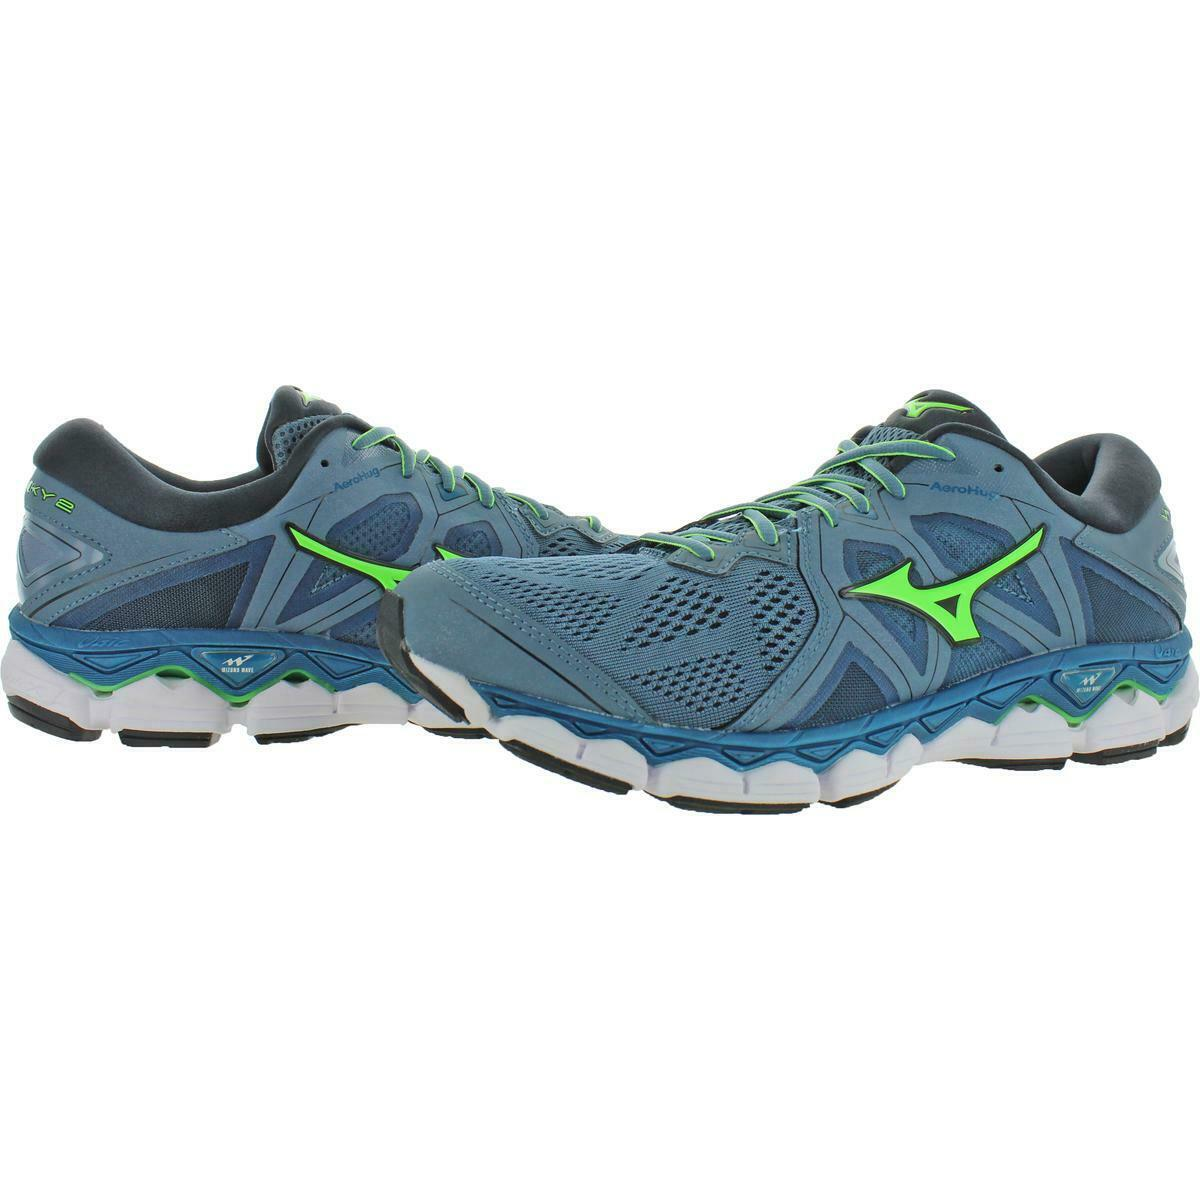 Mizuno Mens Wave Sky 2 Exercise Gym Trainers Athletic Shoes Sneakers BHFO 7314